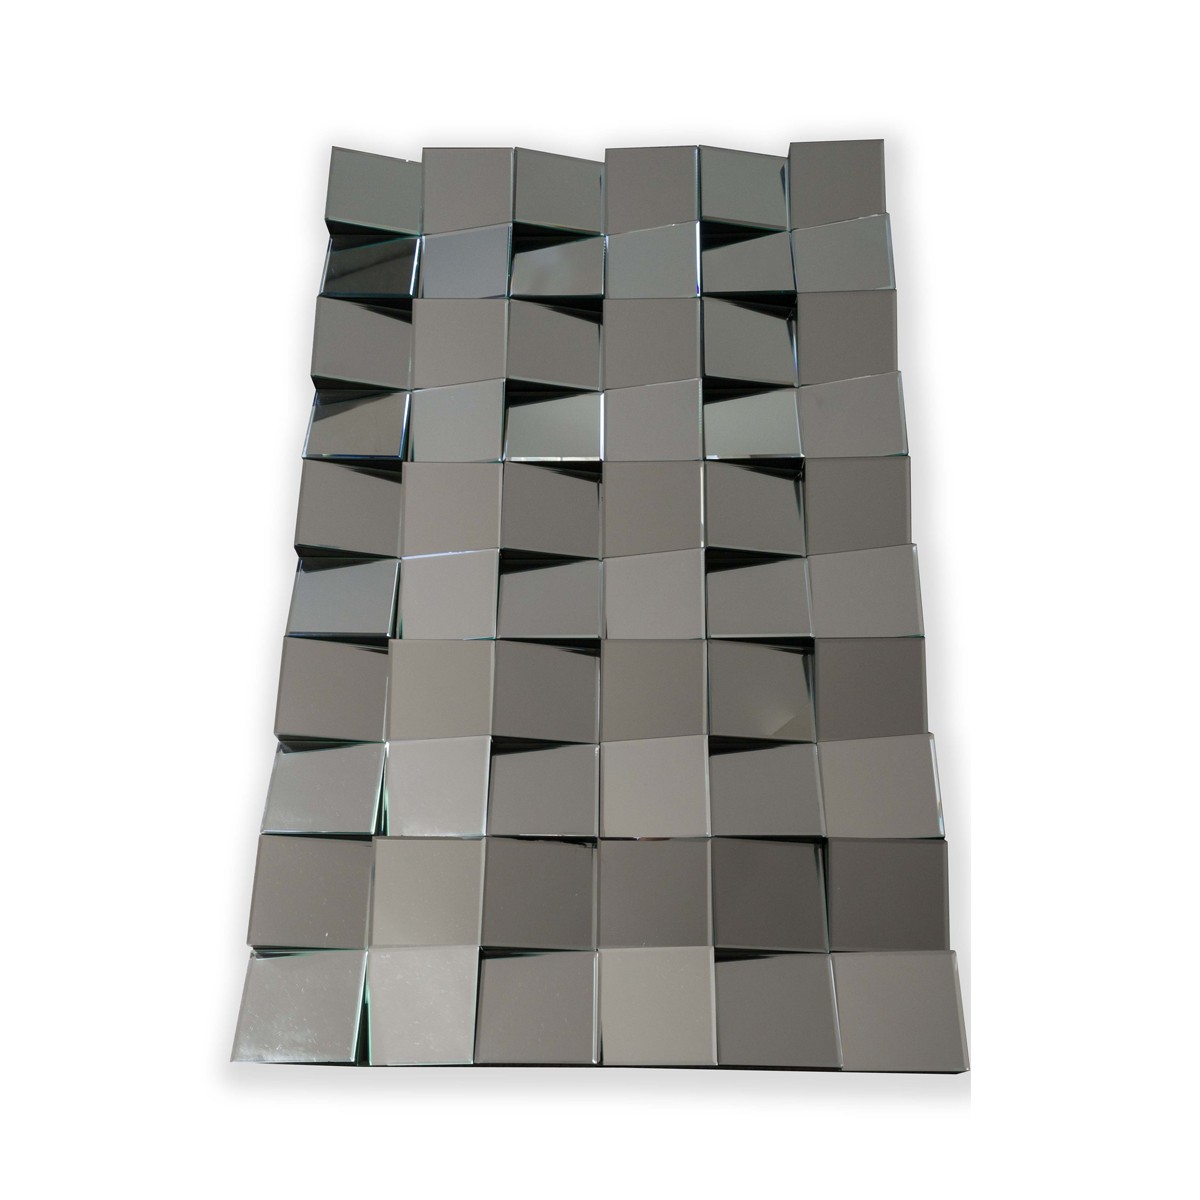 Fritz - Flattering Angled Block Mirror  (Rectangle)